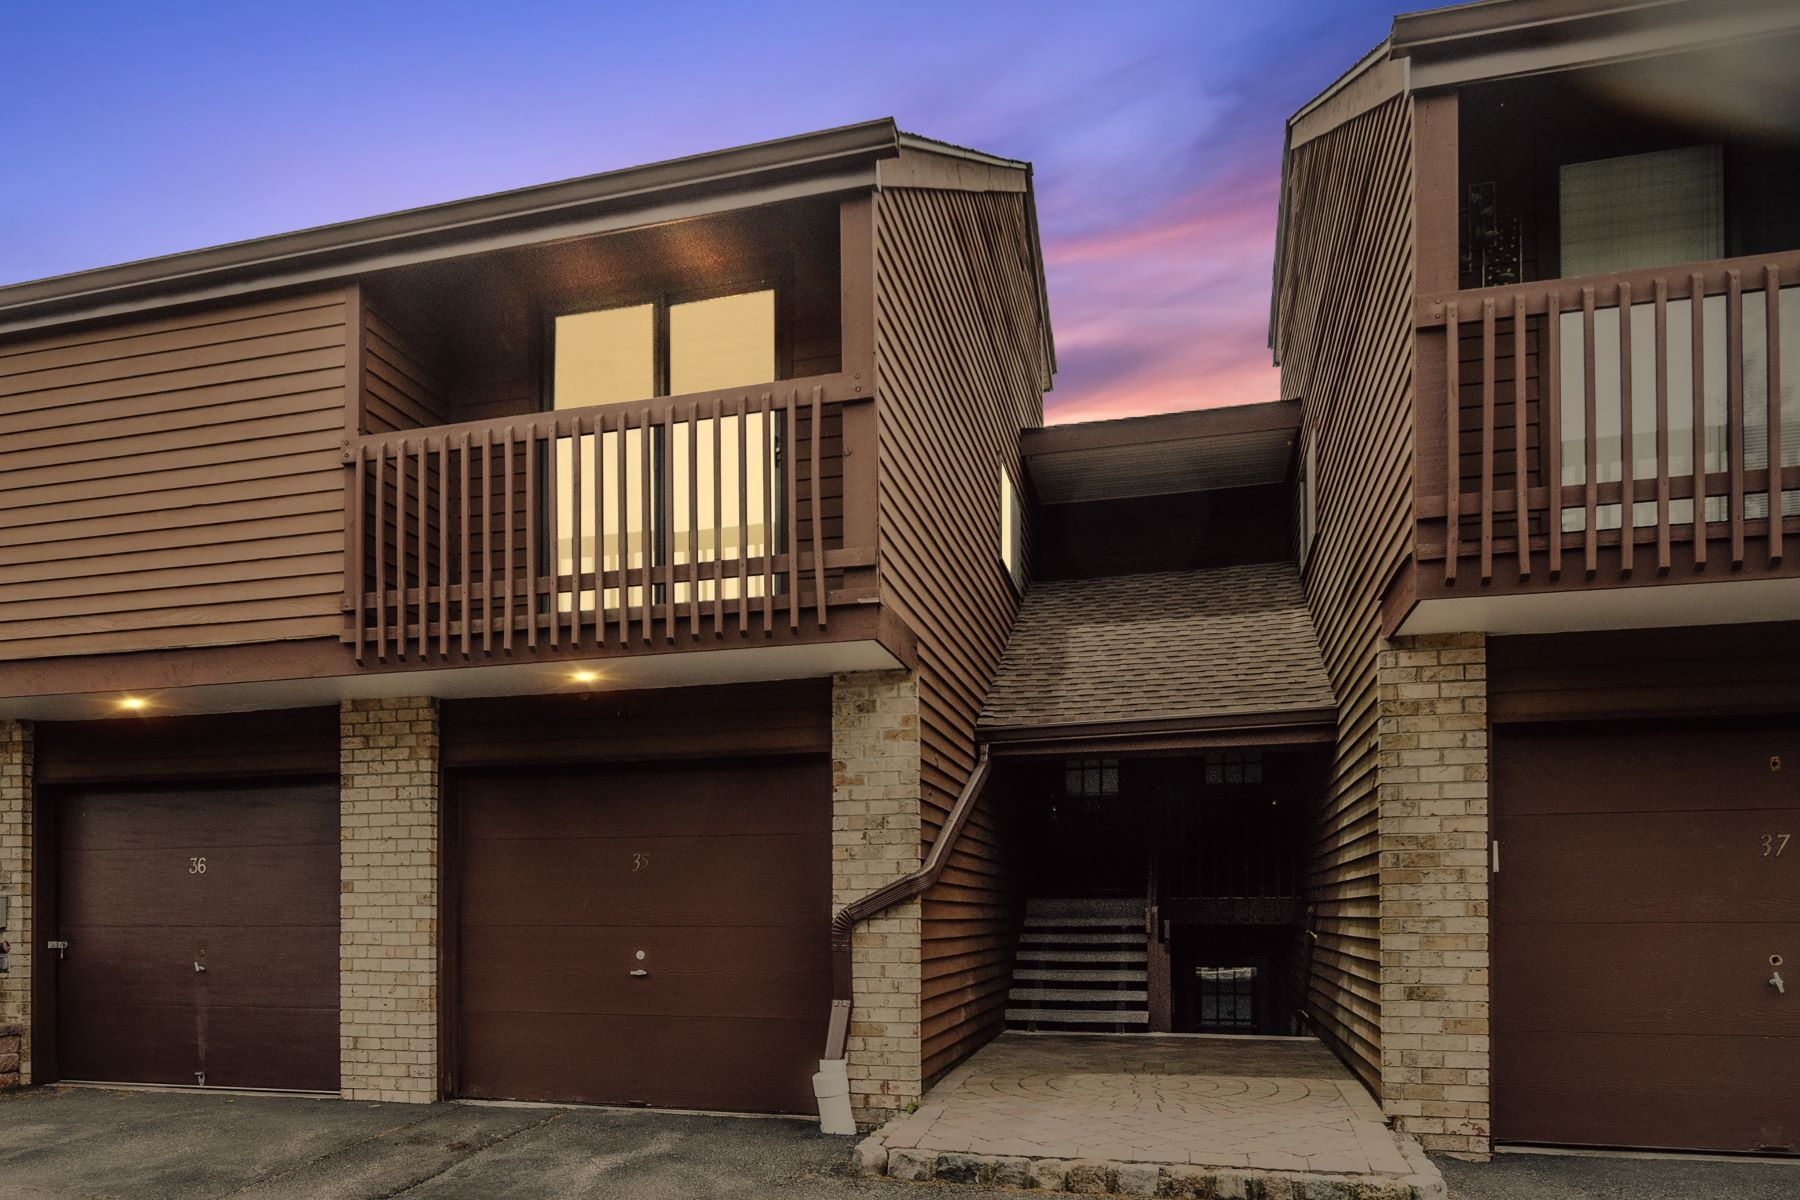 townhouses のために 売買 アット Don't Miss This Modern, Fresh Townhouse 36 Meadowview Drive, Annandale, ニュージャージー 08801 アメリカ